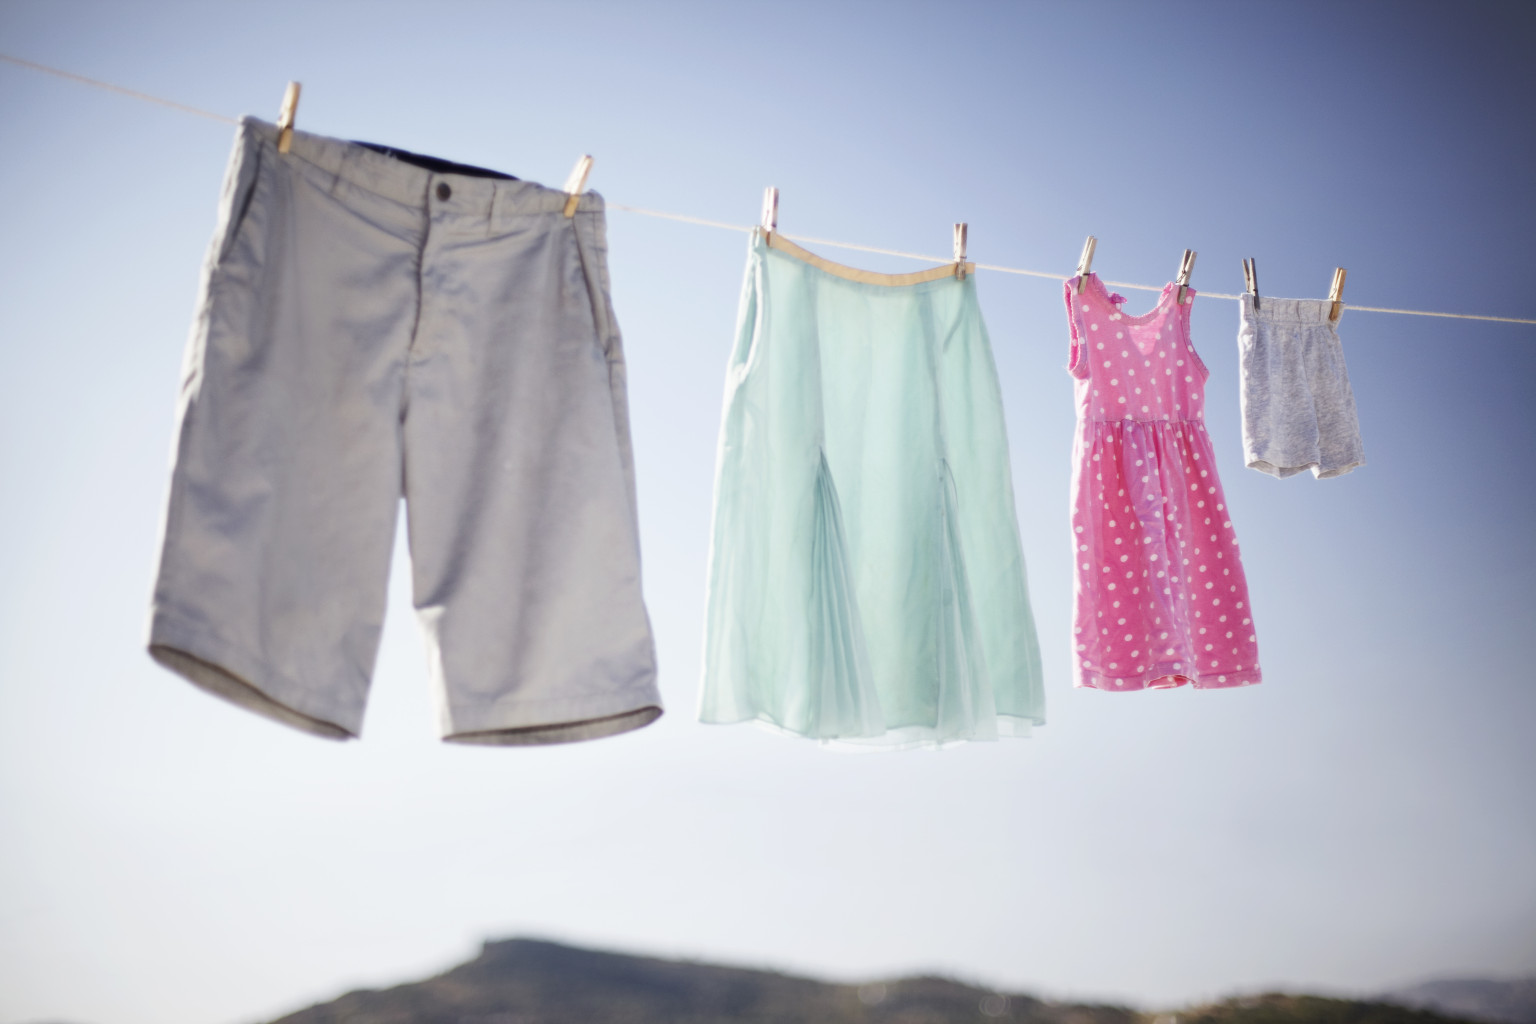 Nothing beats sun dried clothing for fresh smell!